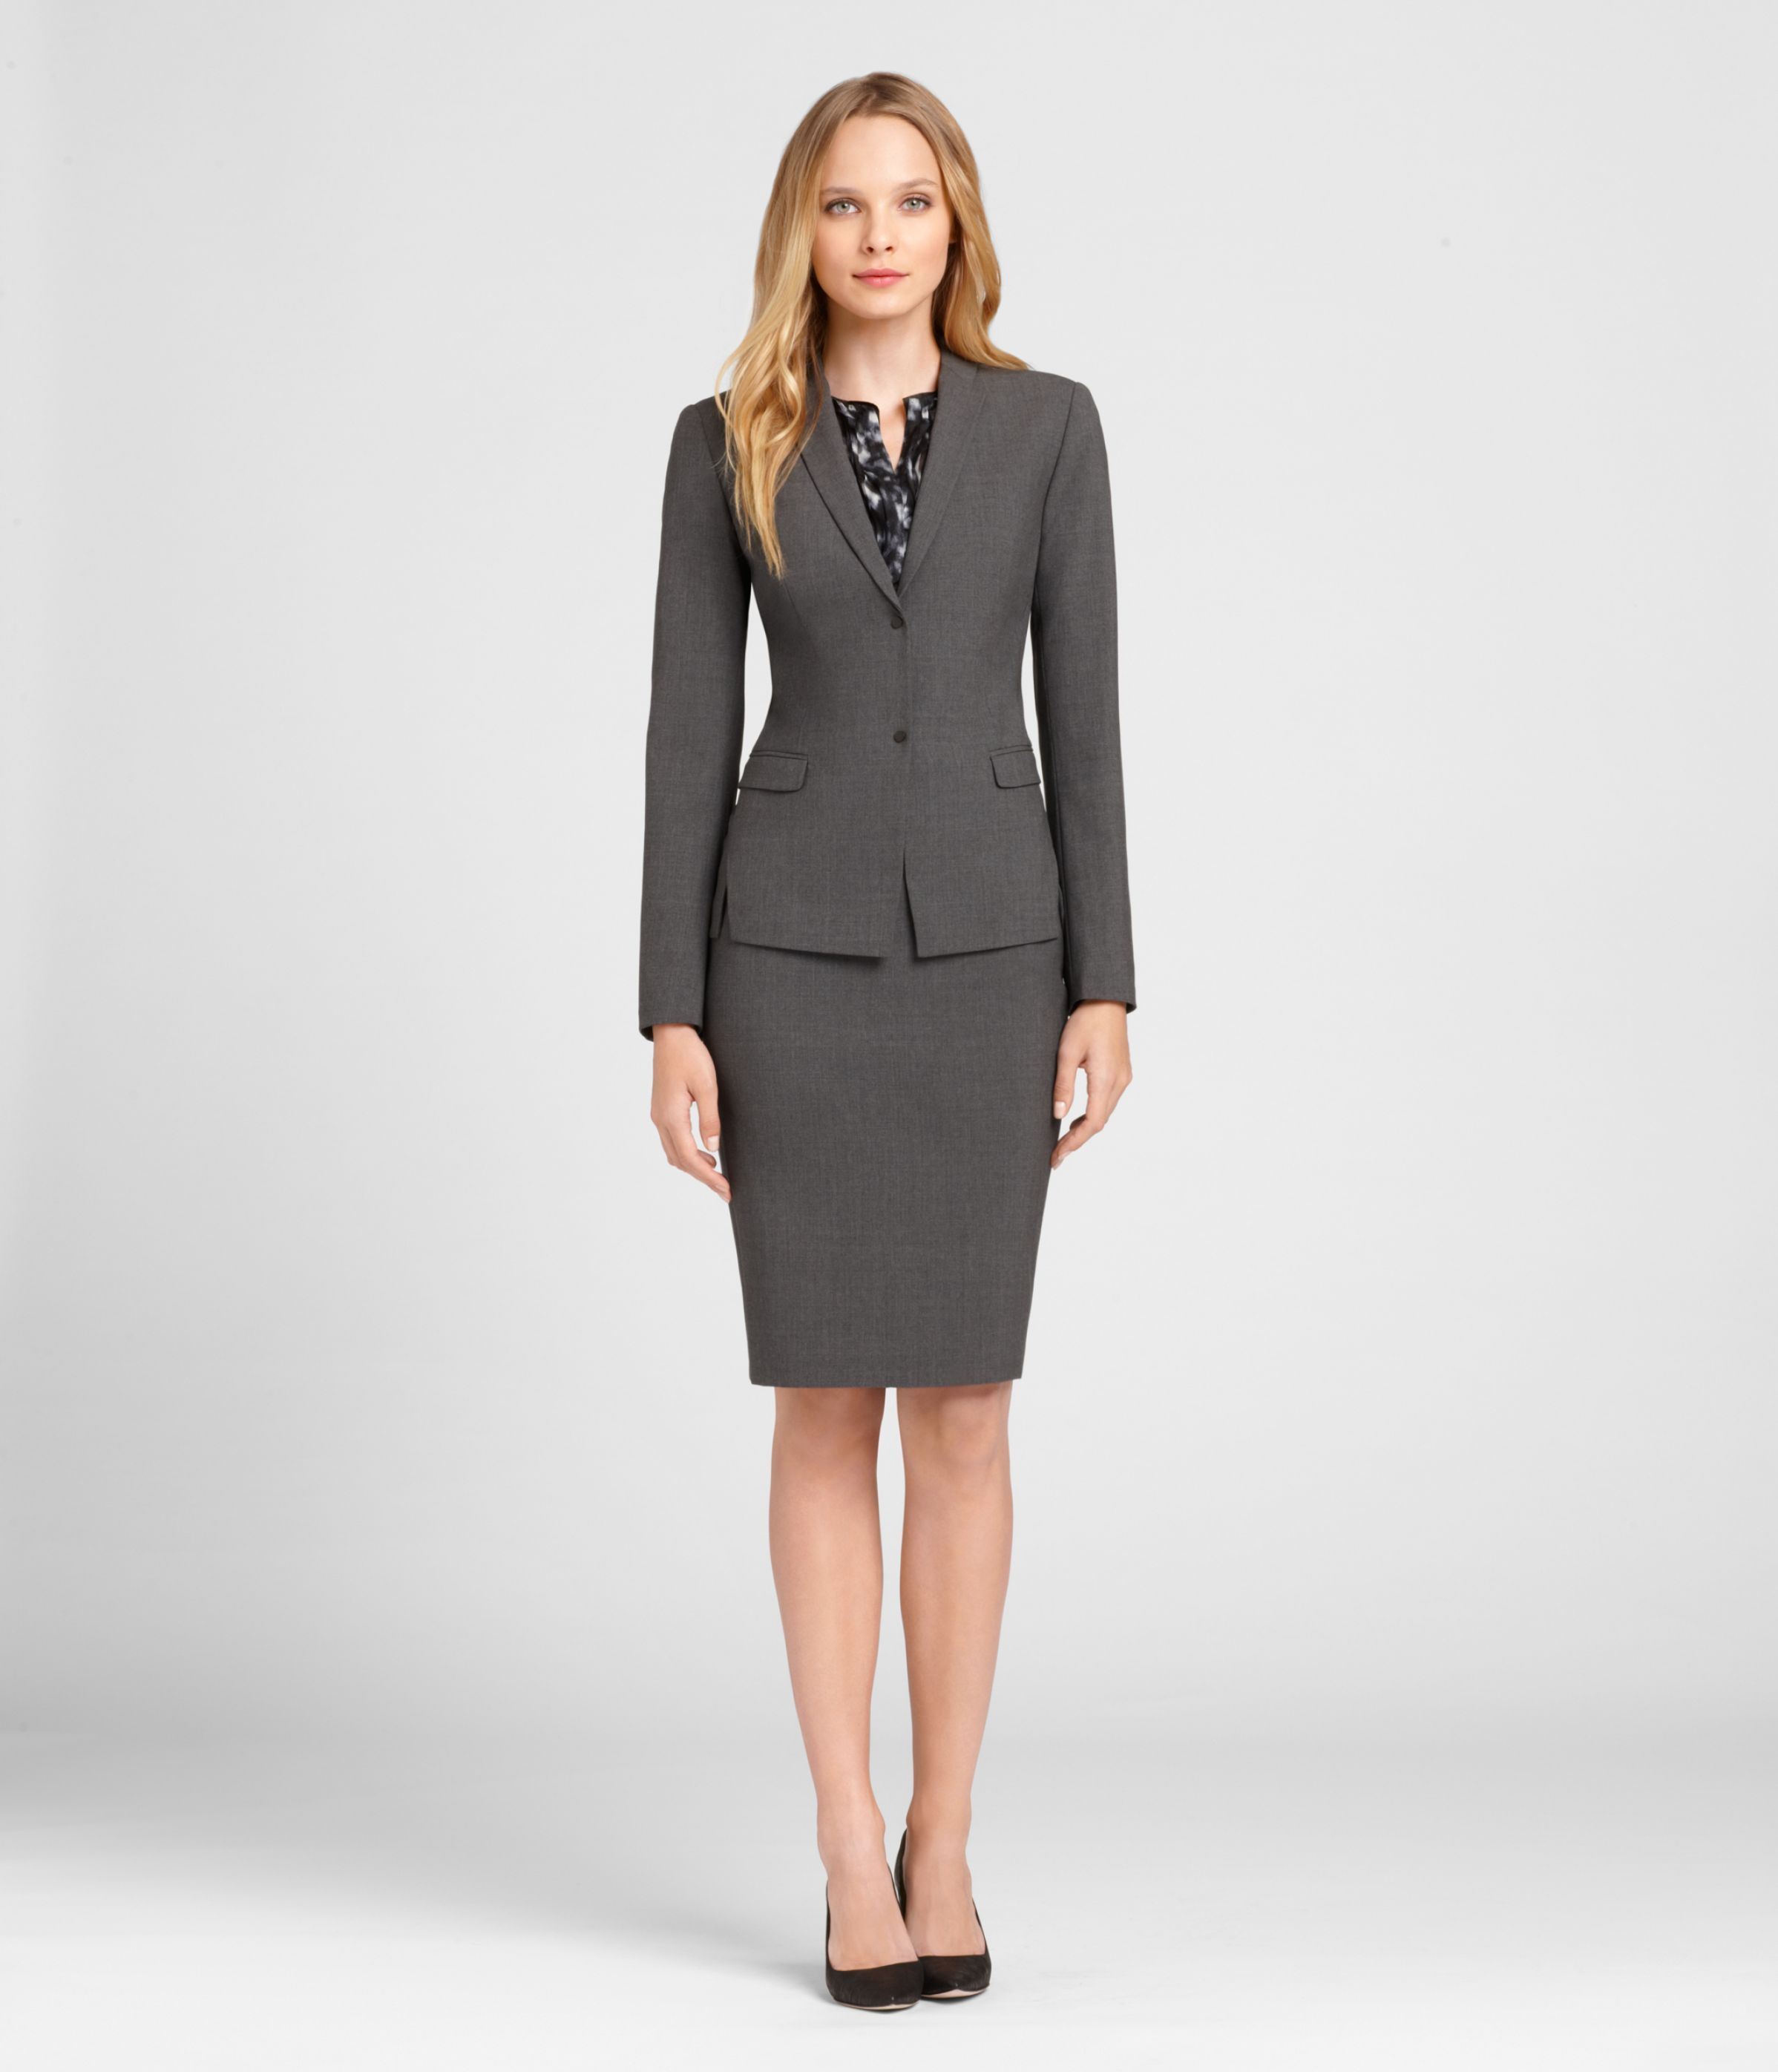 seasonless wool skirt suit work wear business appropriate clothes for women to wear at interview